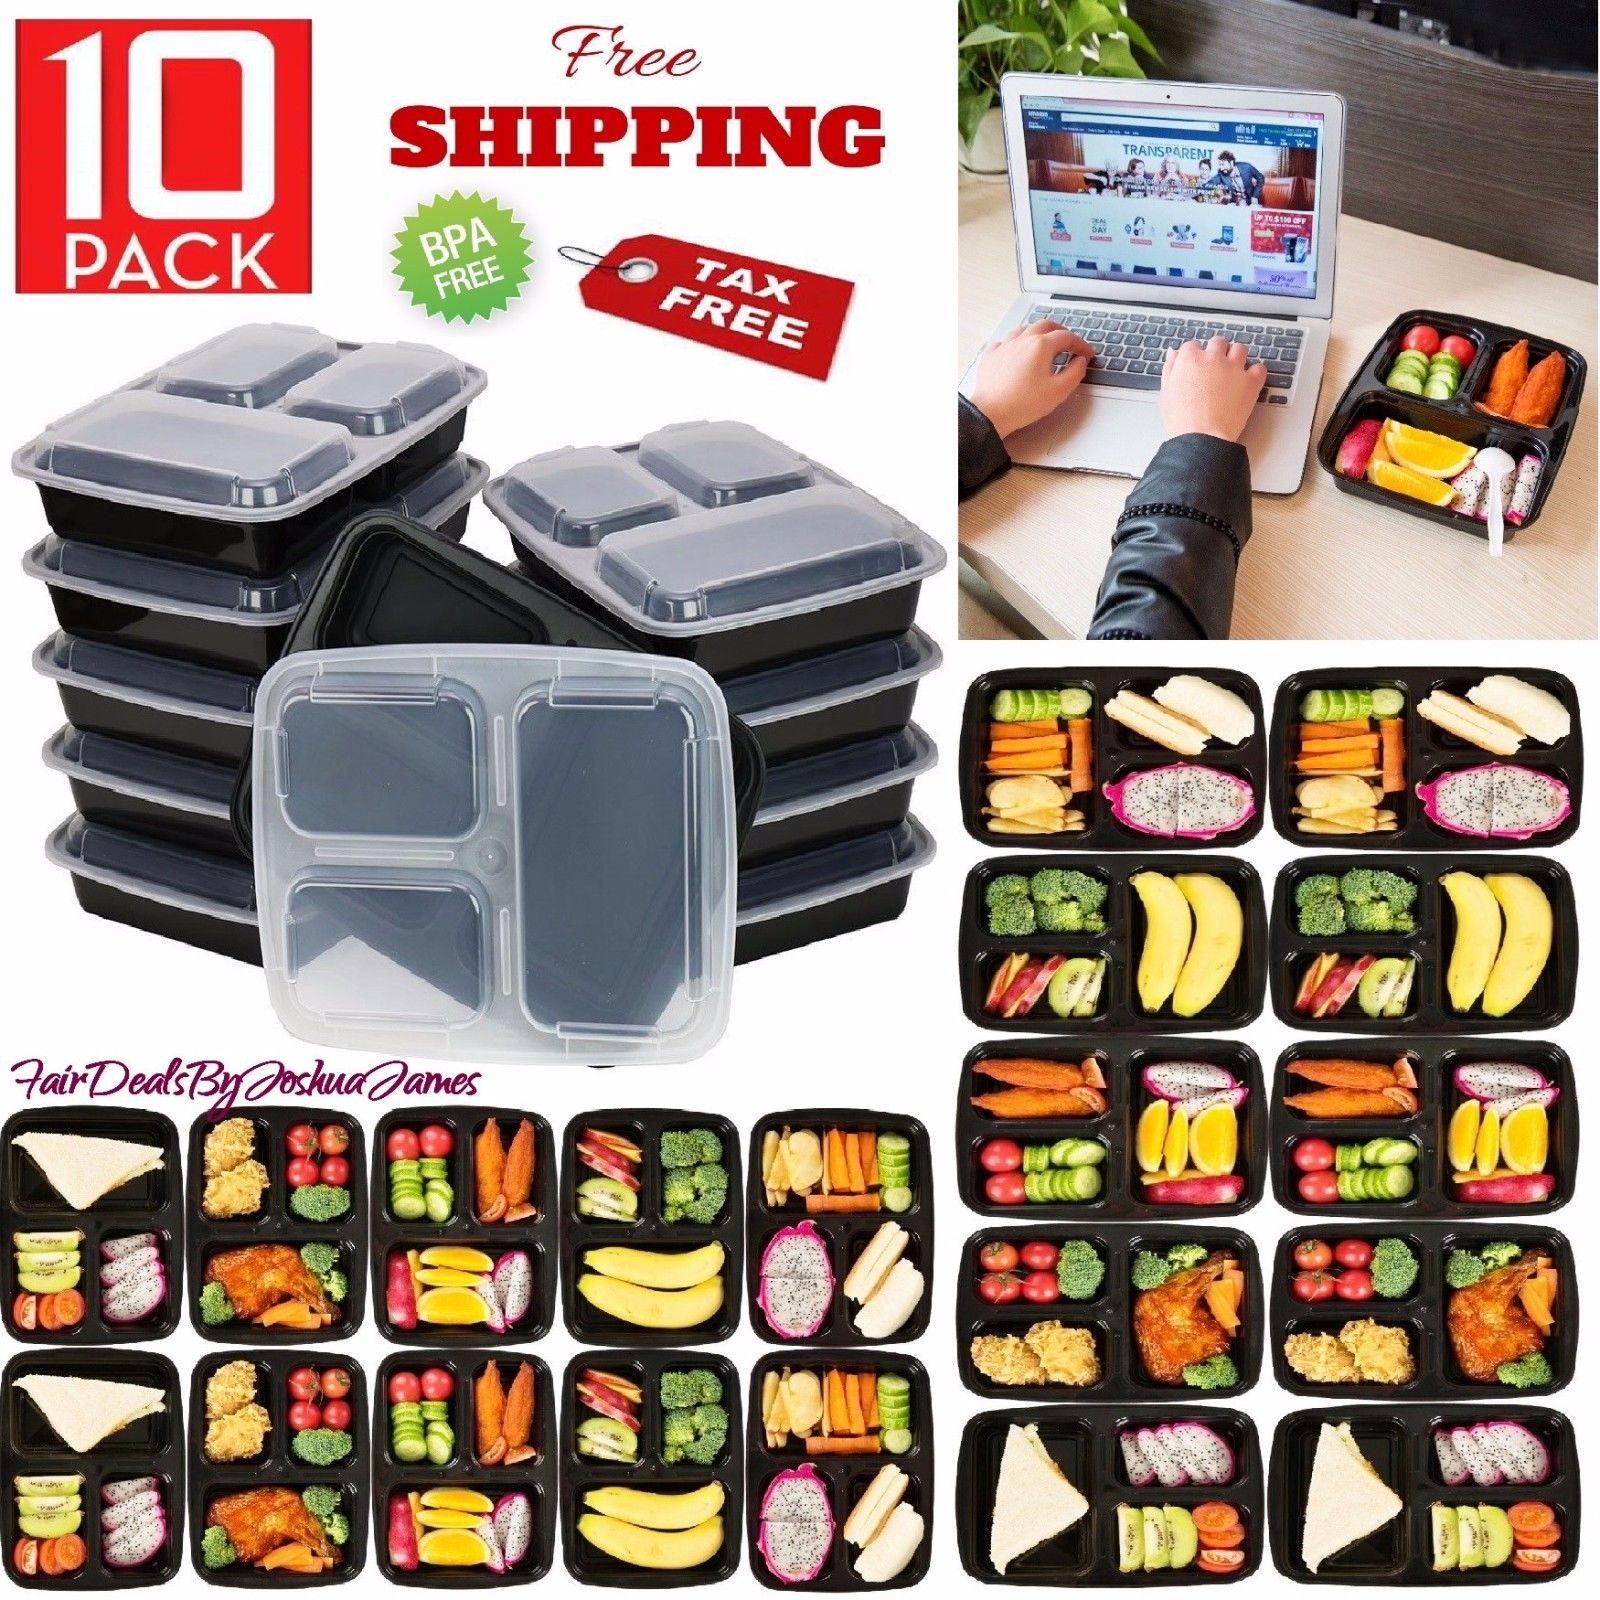 10 Meal Prep Containers 3 Compartment Plastic Food Storage Microwavable Reusable 1